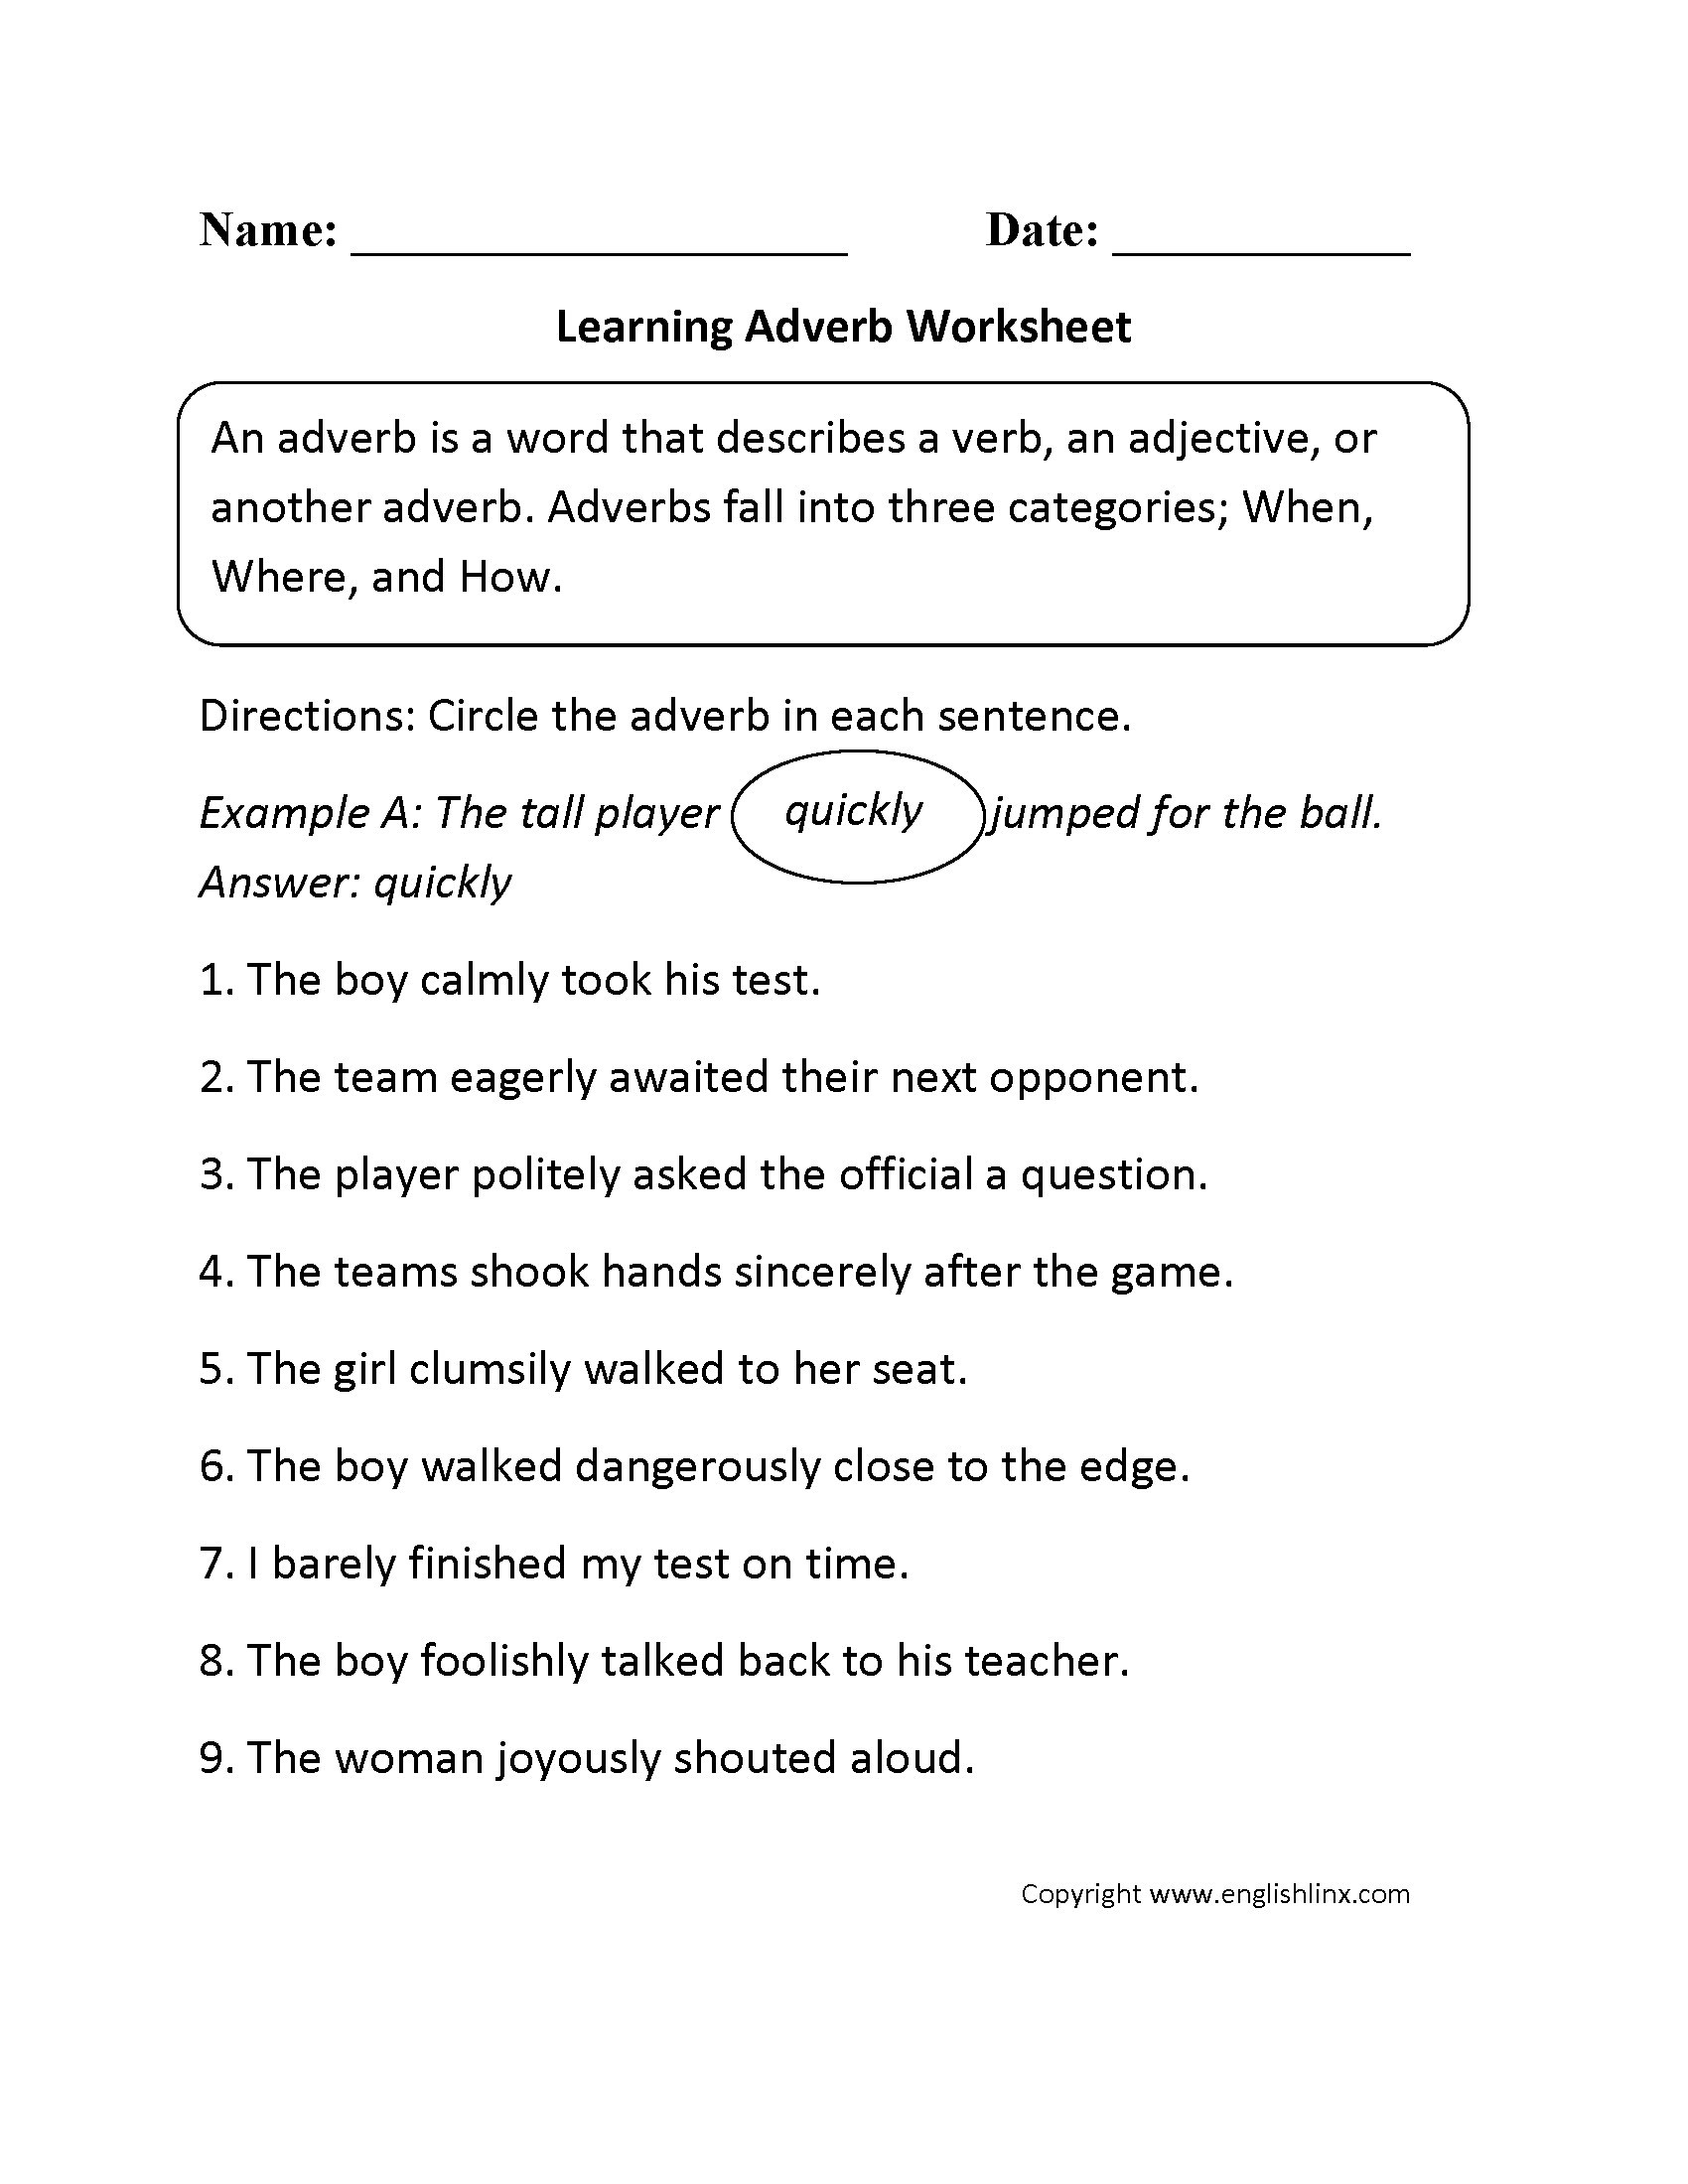 4th Grade Adverb Worksheets Adding Improper Fractions Worksheet with Answers Merit Badge